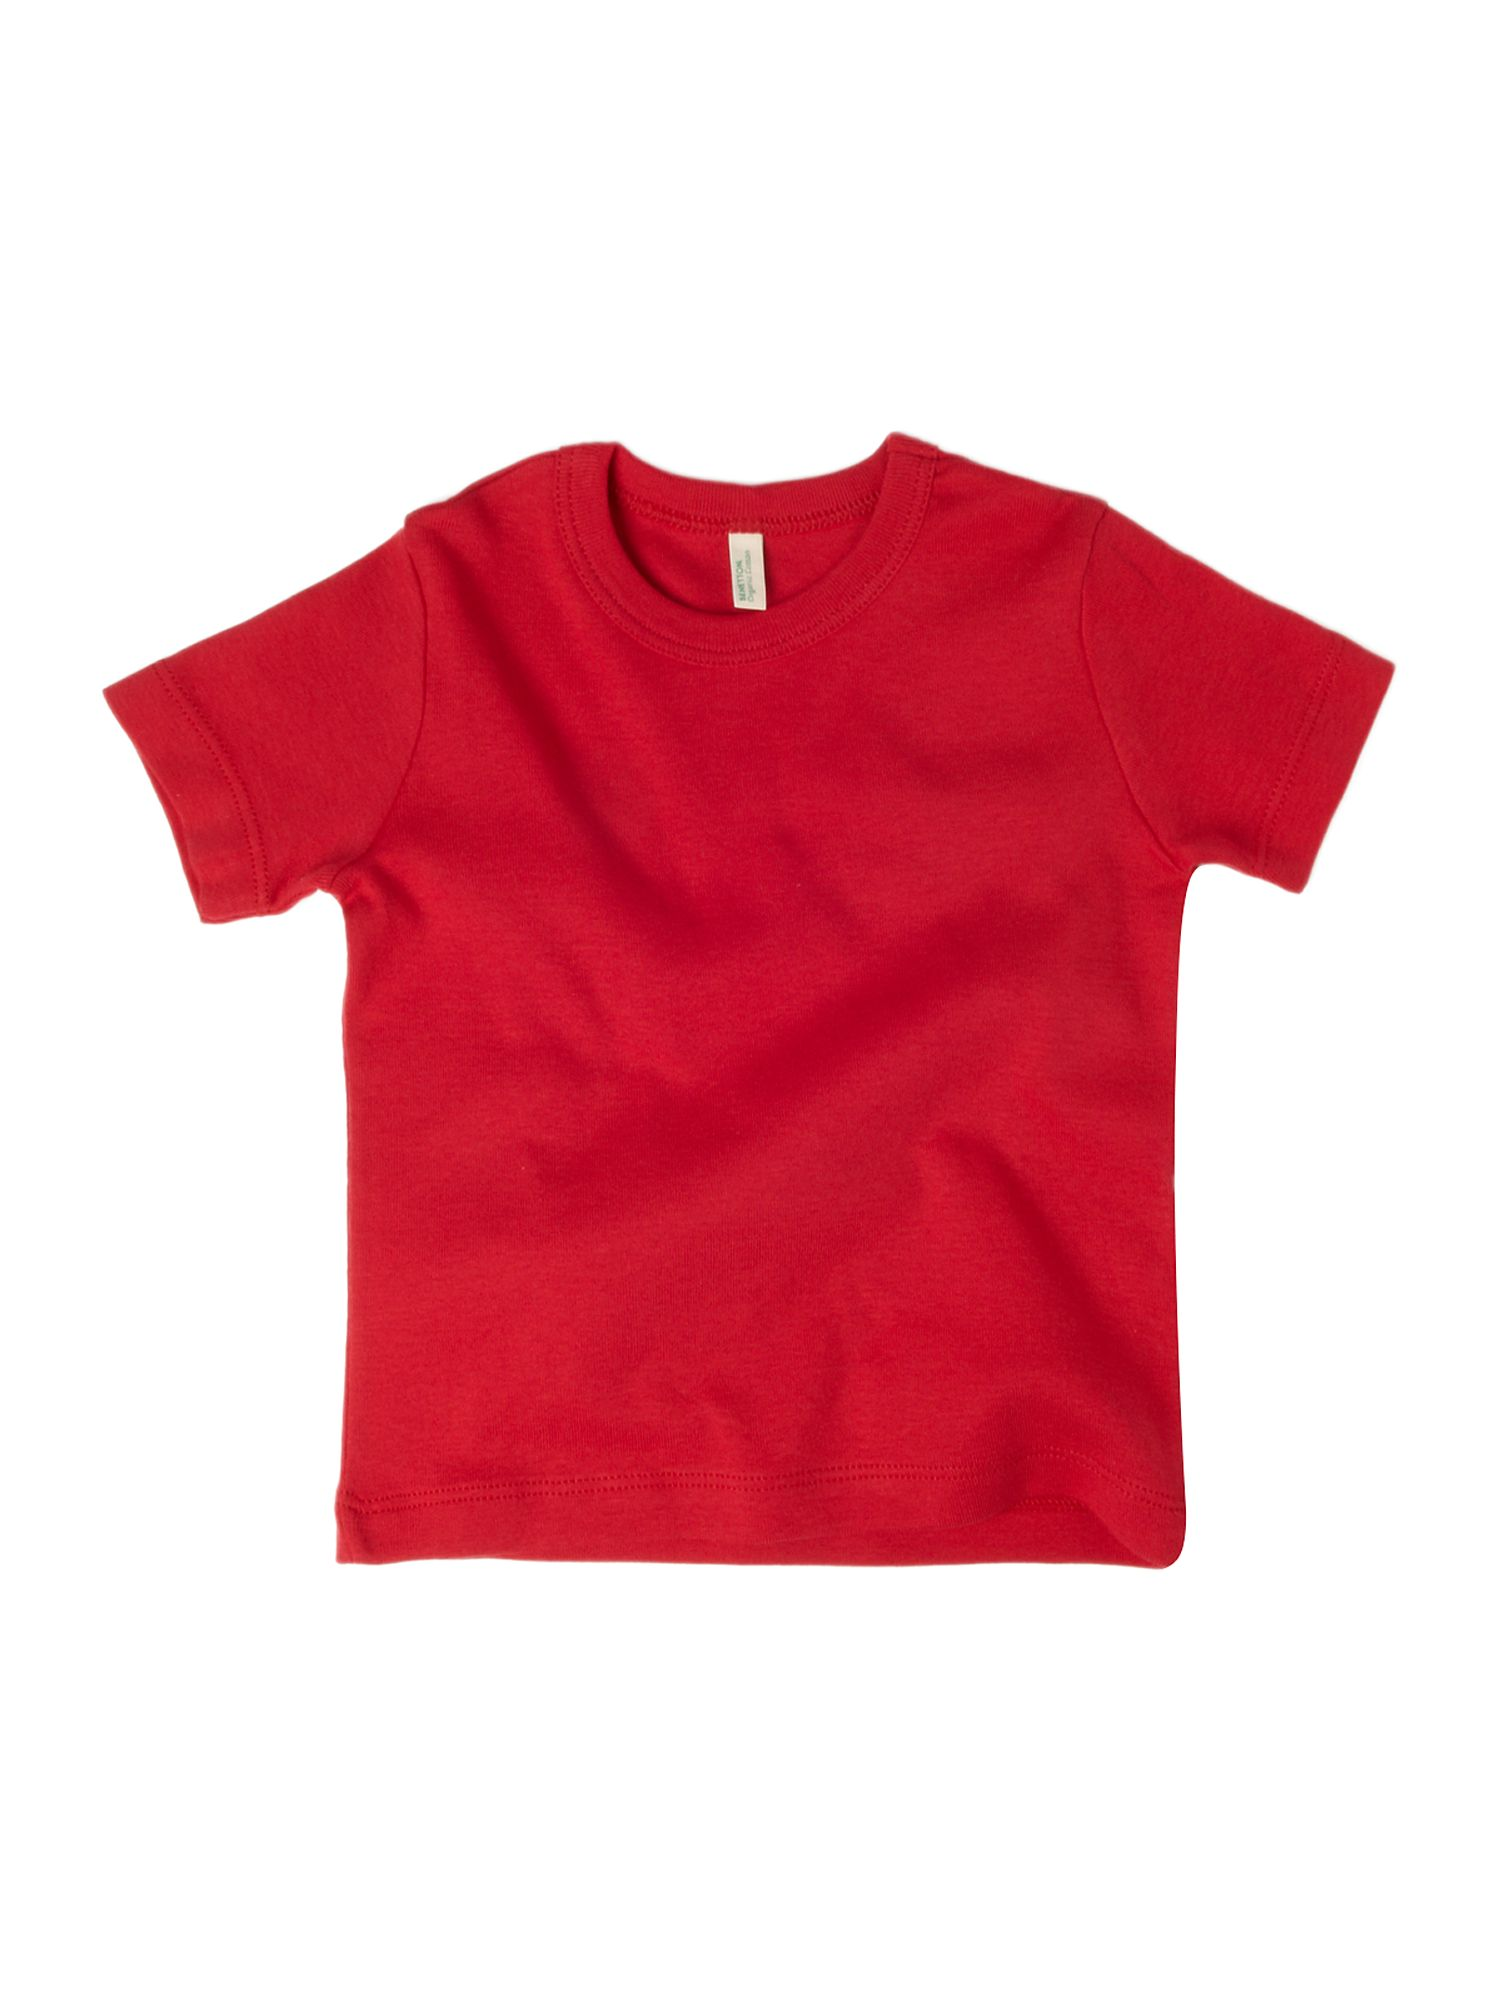 Benetton Short-sleeved logo crew neck T-shirt Red product image